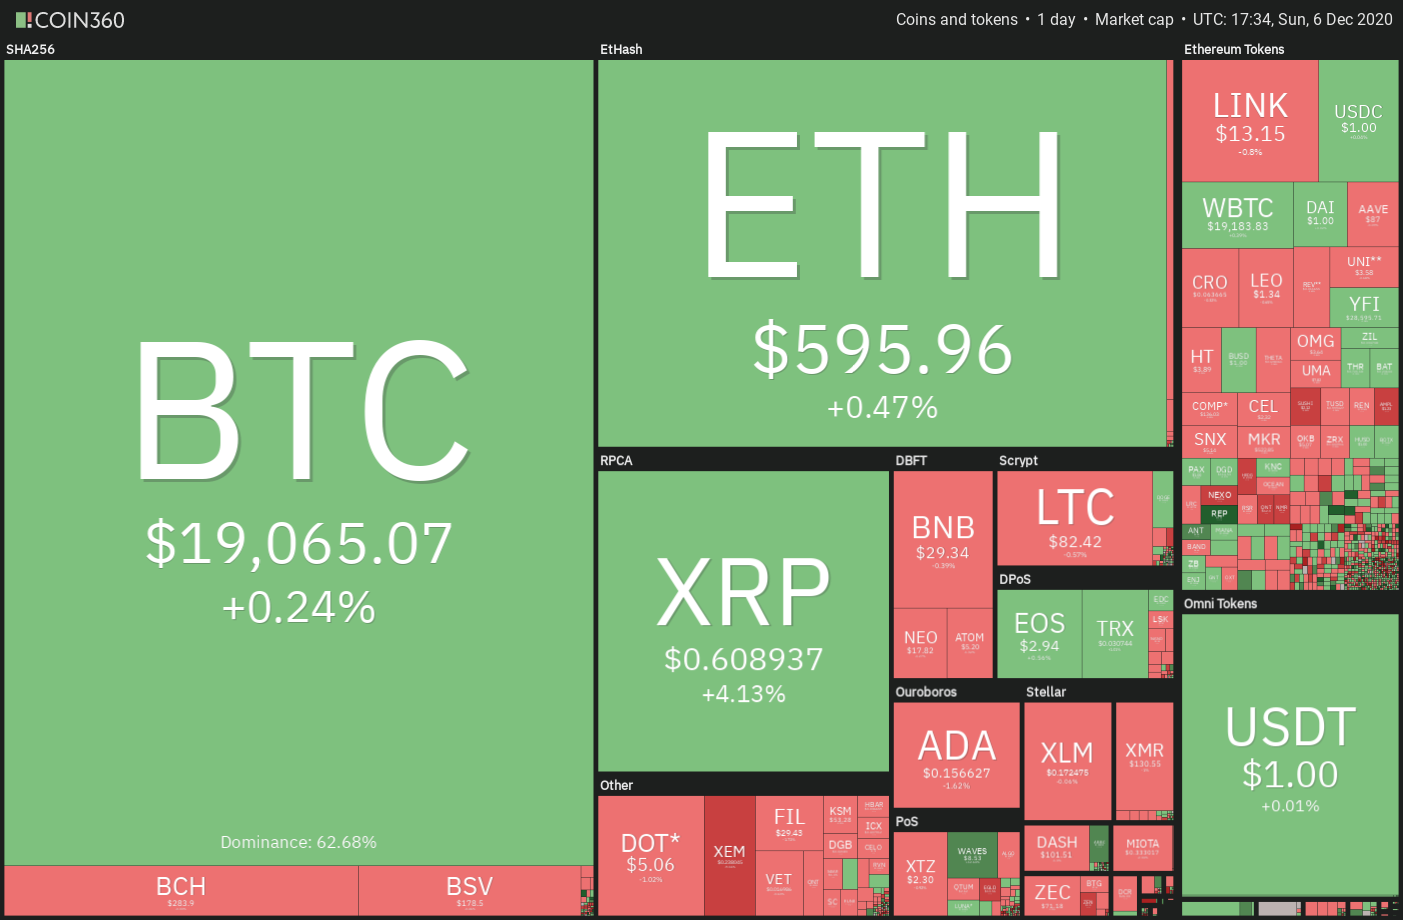 Top 5 cryptocurrencies to watch this week: BTC, ETH, XMR, VET, AAVE